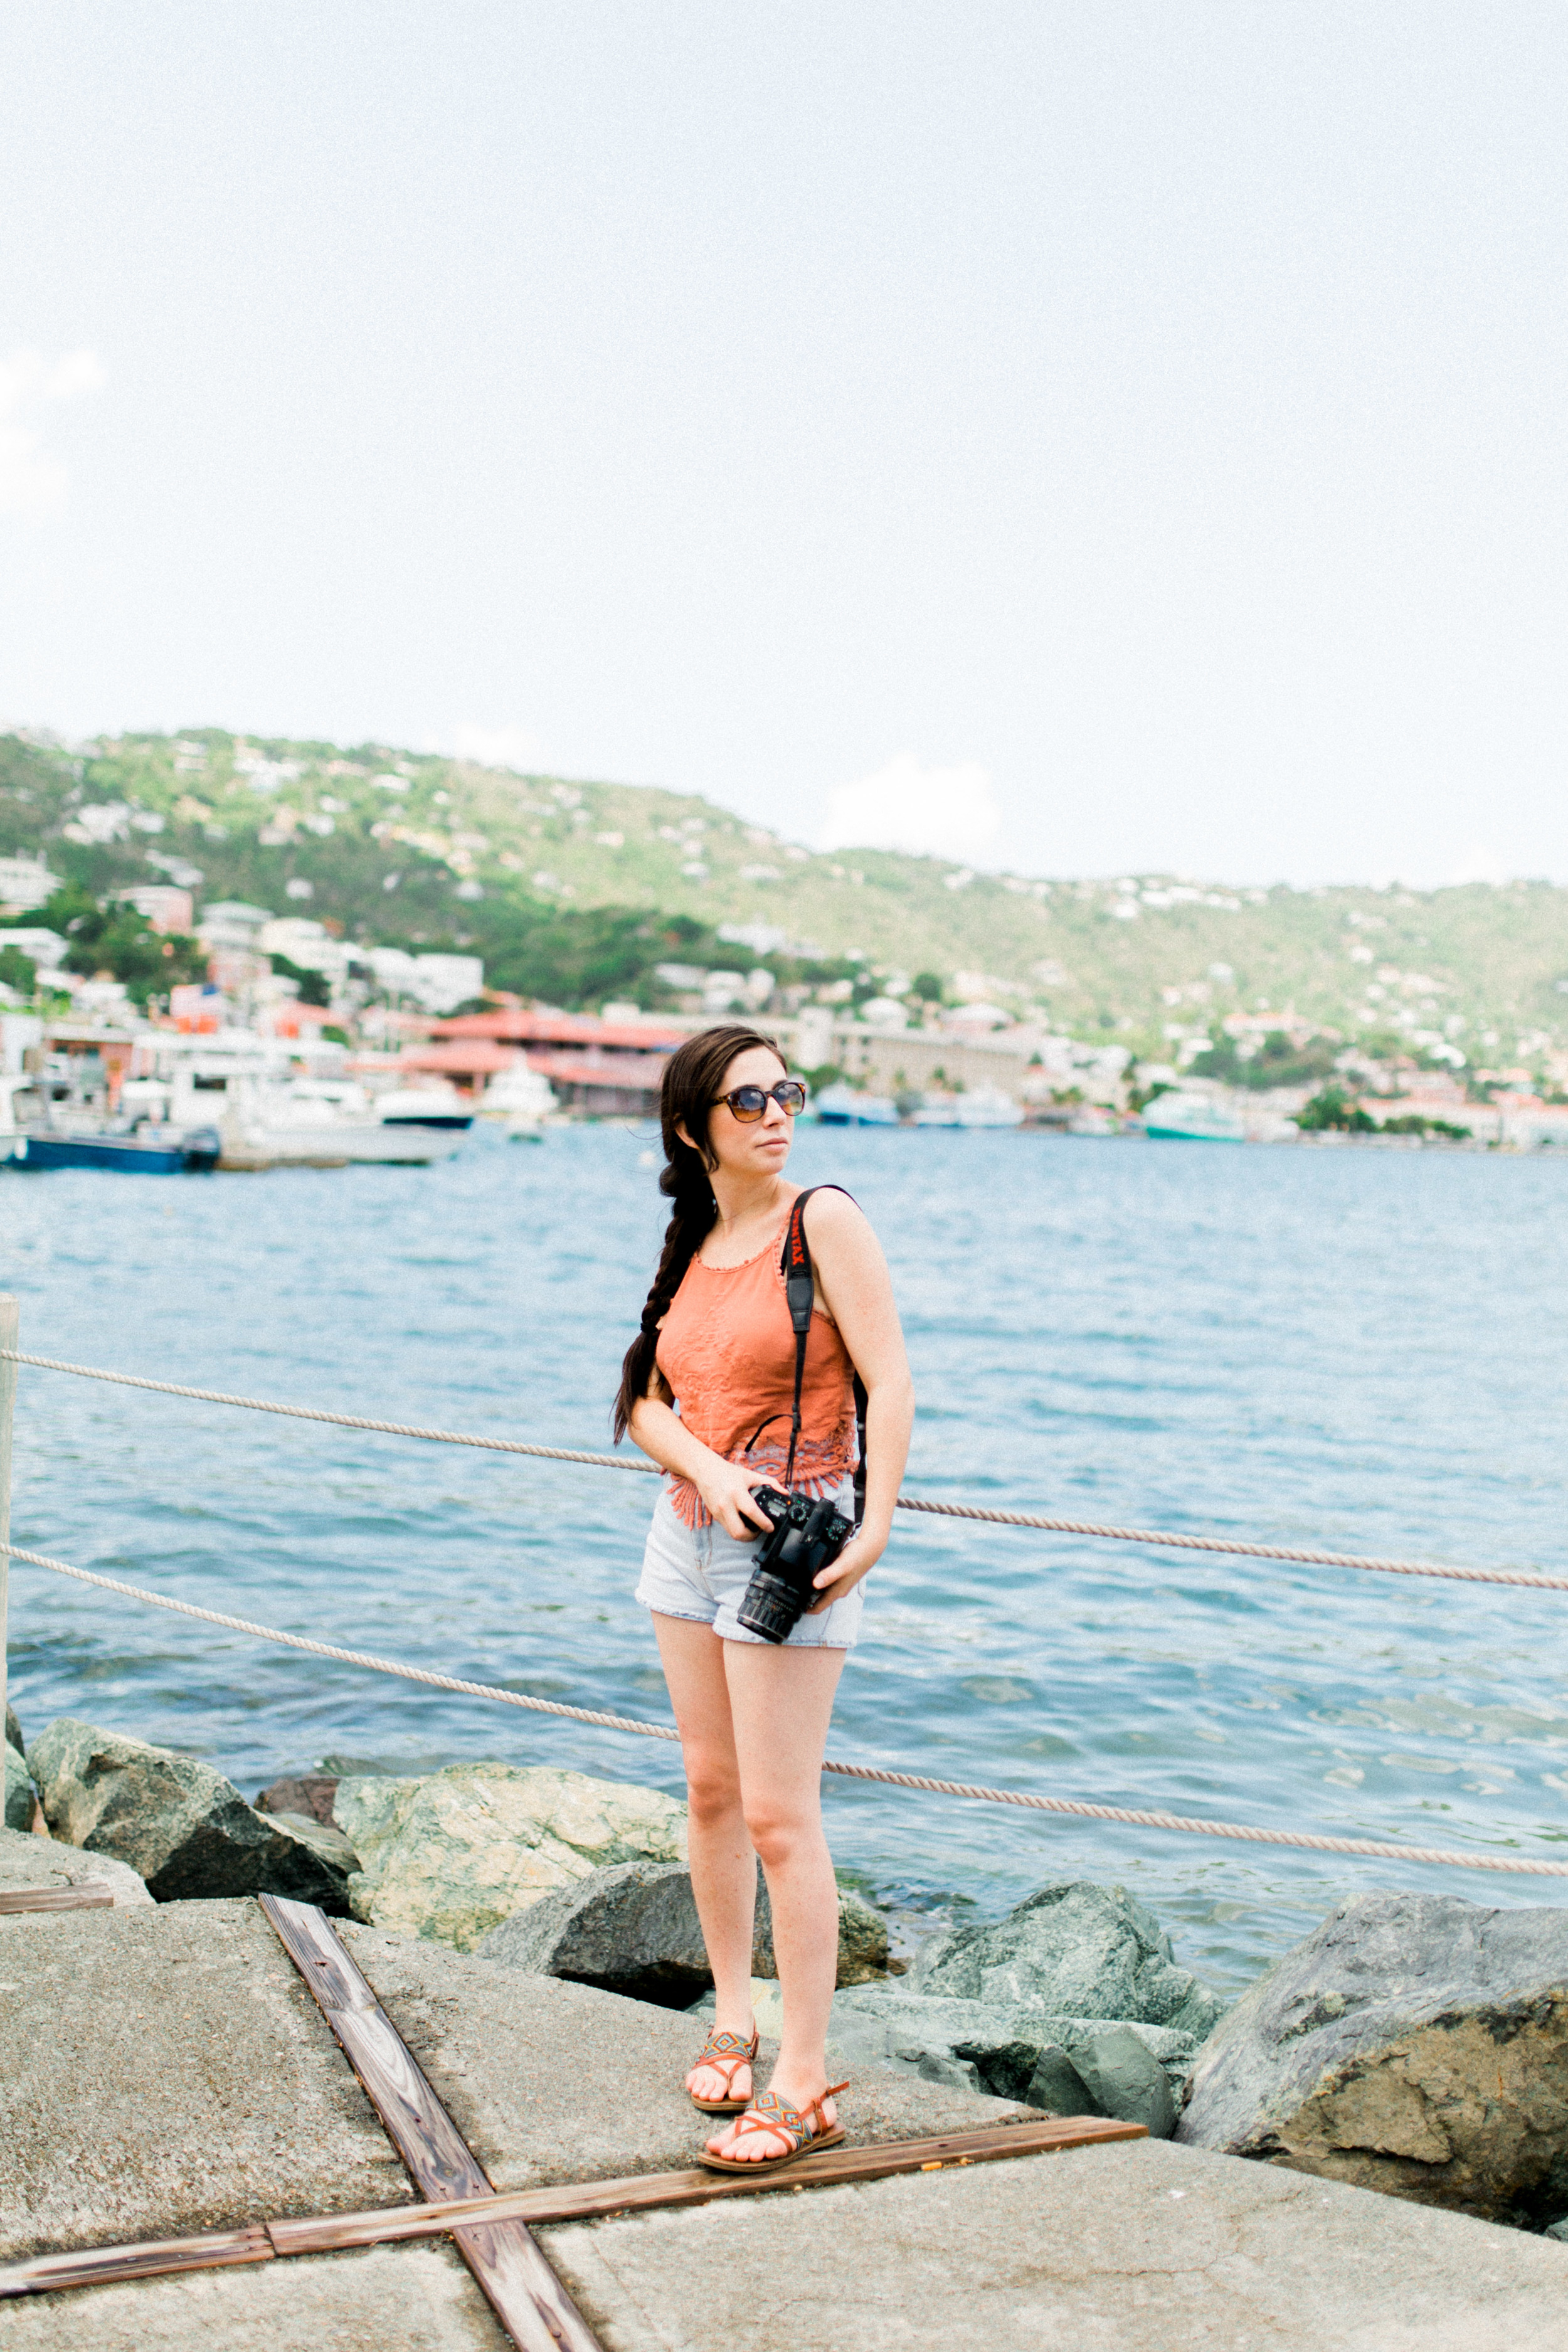 St. Thomas, water island USVI landscape, traveling photographer